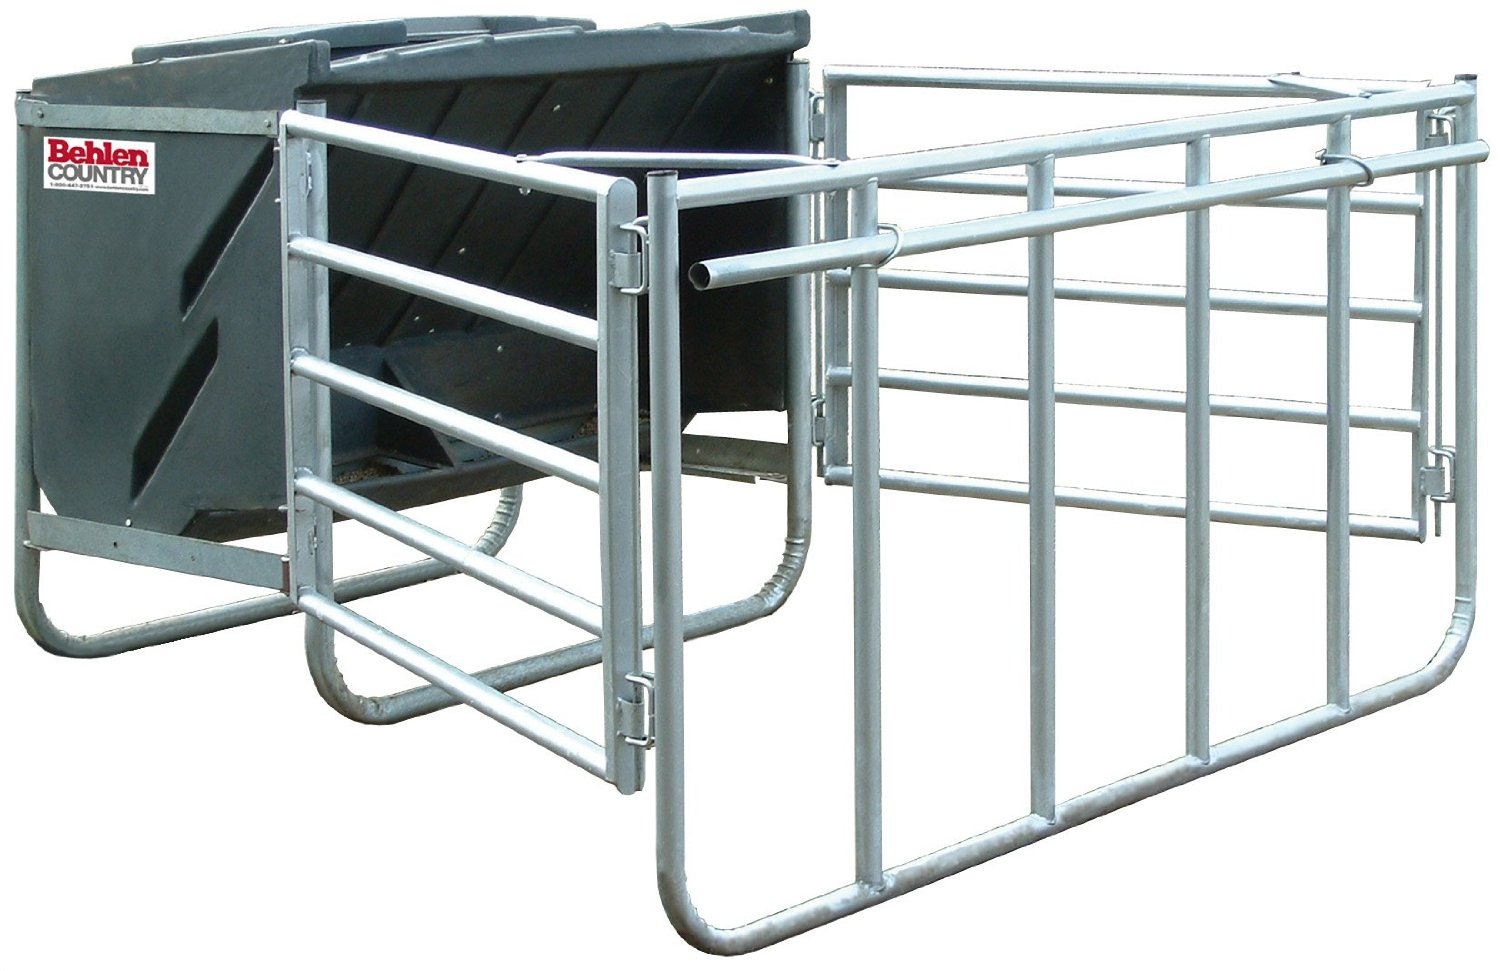 Behlen Country 24121768 750-Pound Calf Creep Feeder